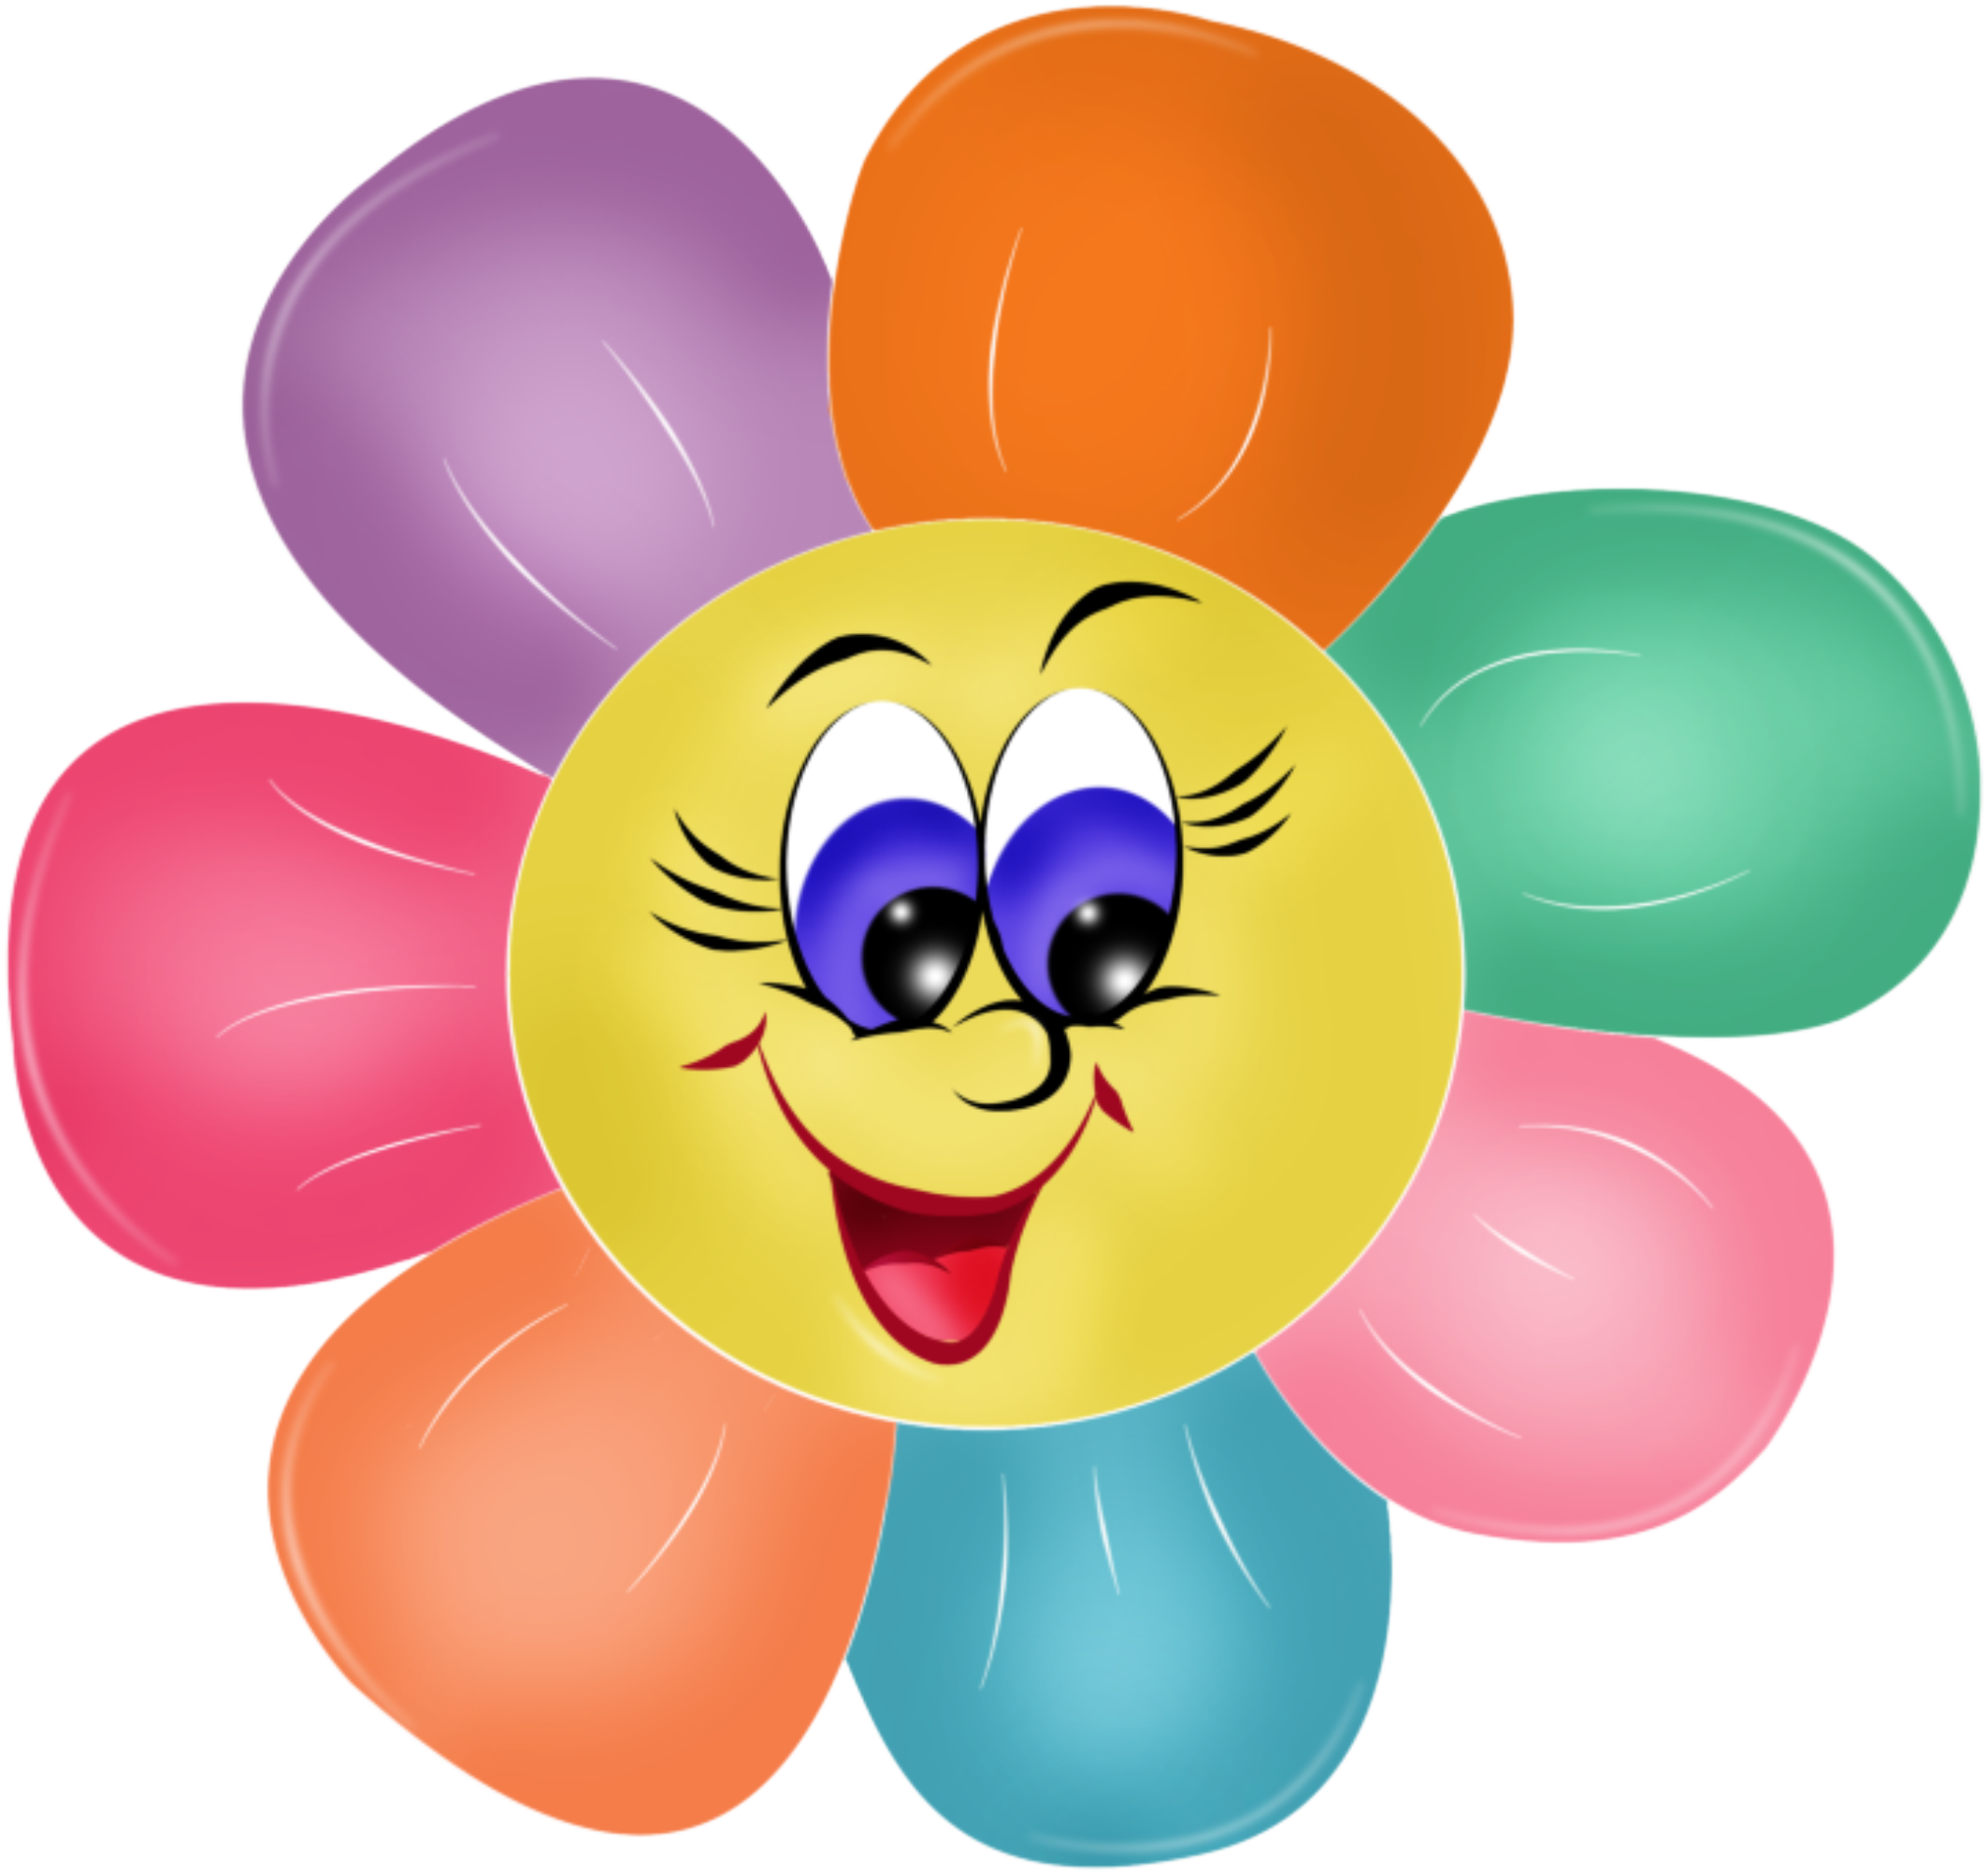 Smiling flower clipart clipart free azbuka.png (2126×2002) | Klipart | Pinterest | Smileys, Smiley and ... clipart free